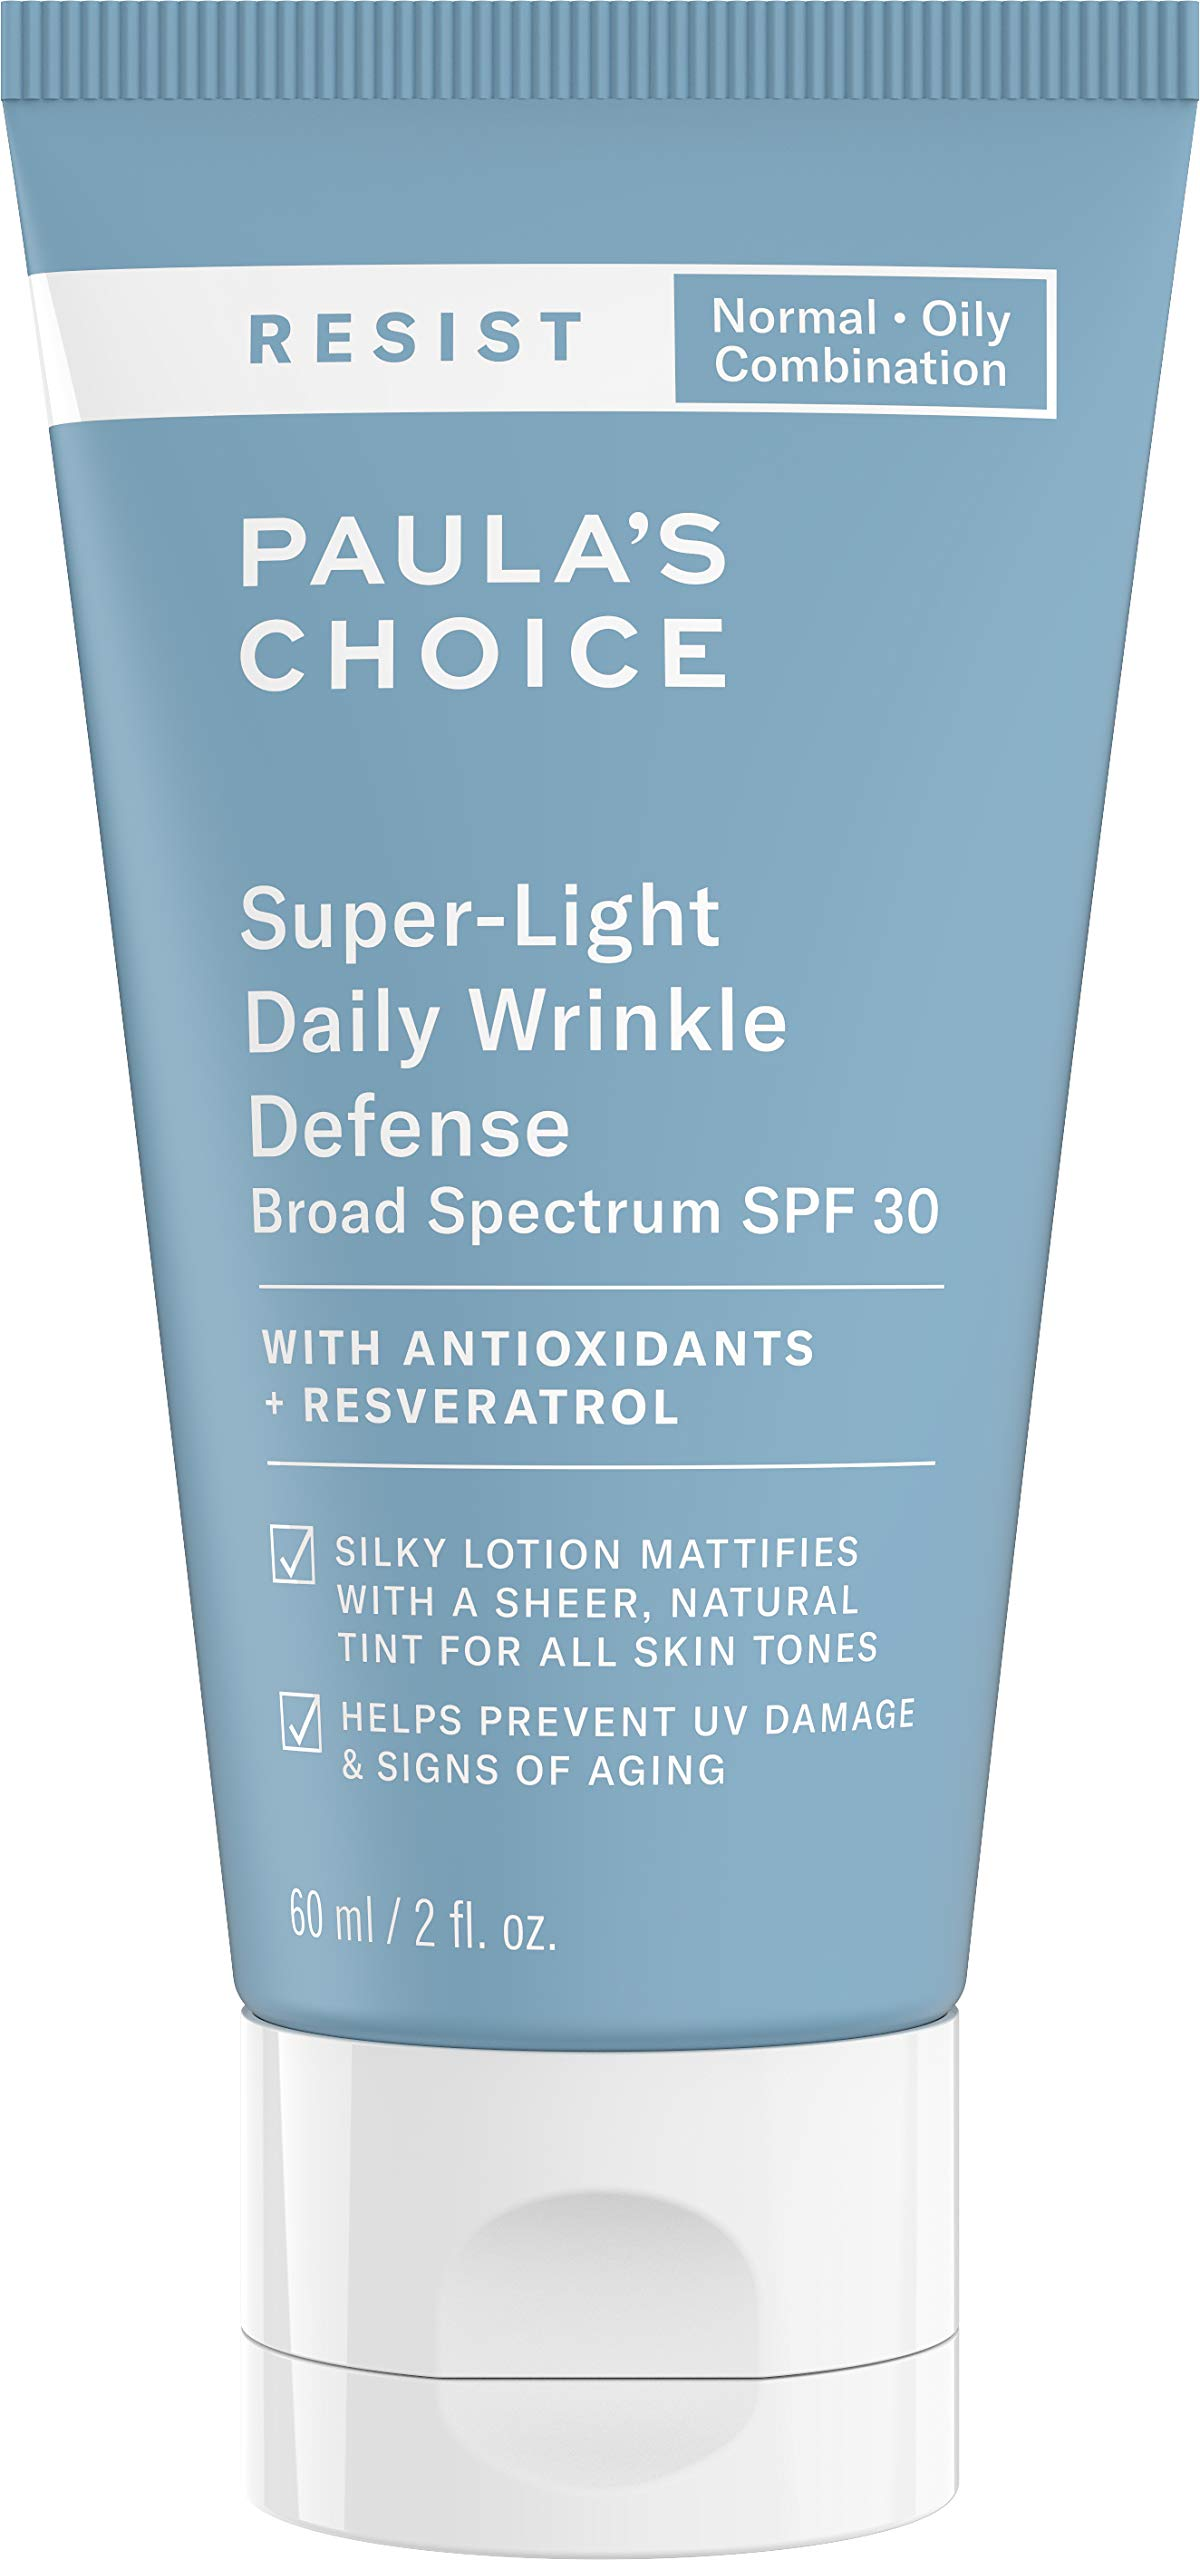 Paula's Choice RESIST Super-Light Daily Wrinkle Defense SPF 30 Matte Tinted Face Moisturizer with UVA & UVB Protection, Anti-Aging Sunscreen for Oily Skin, 2 Ounce